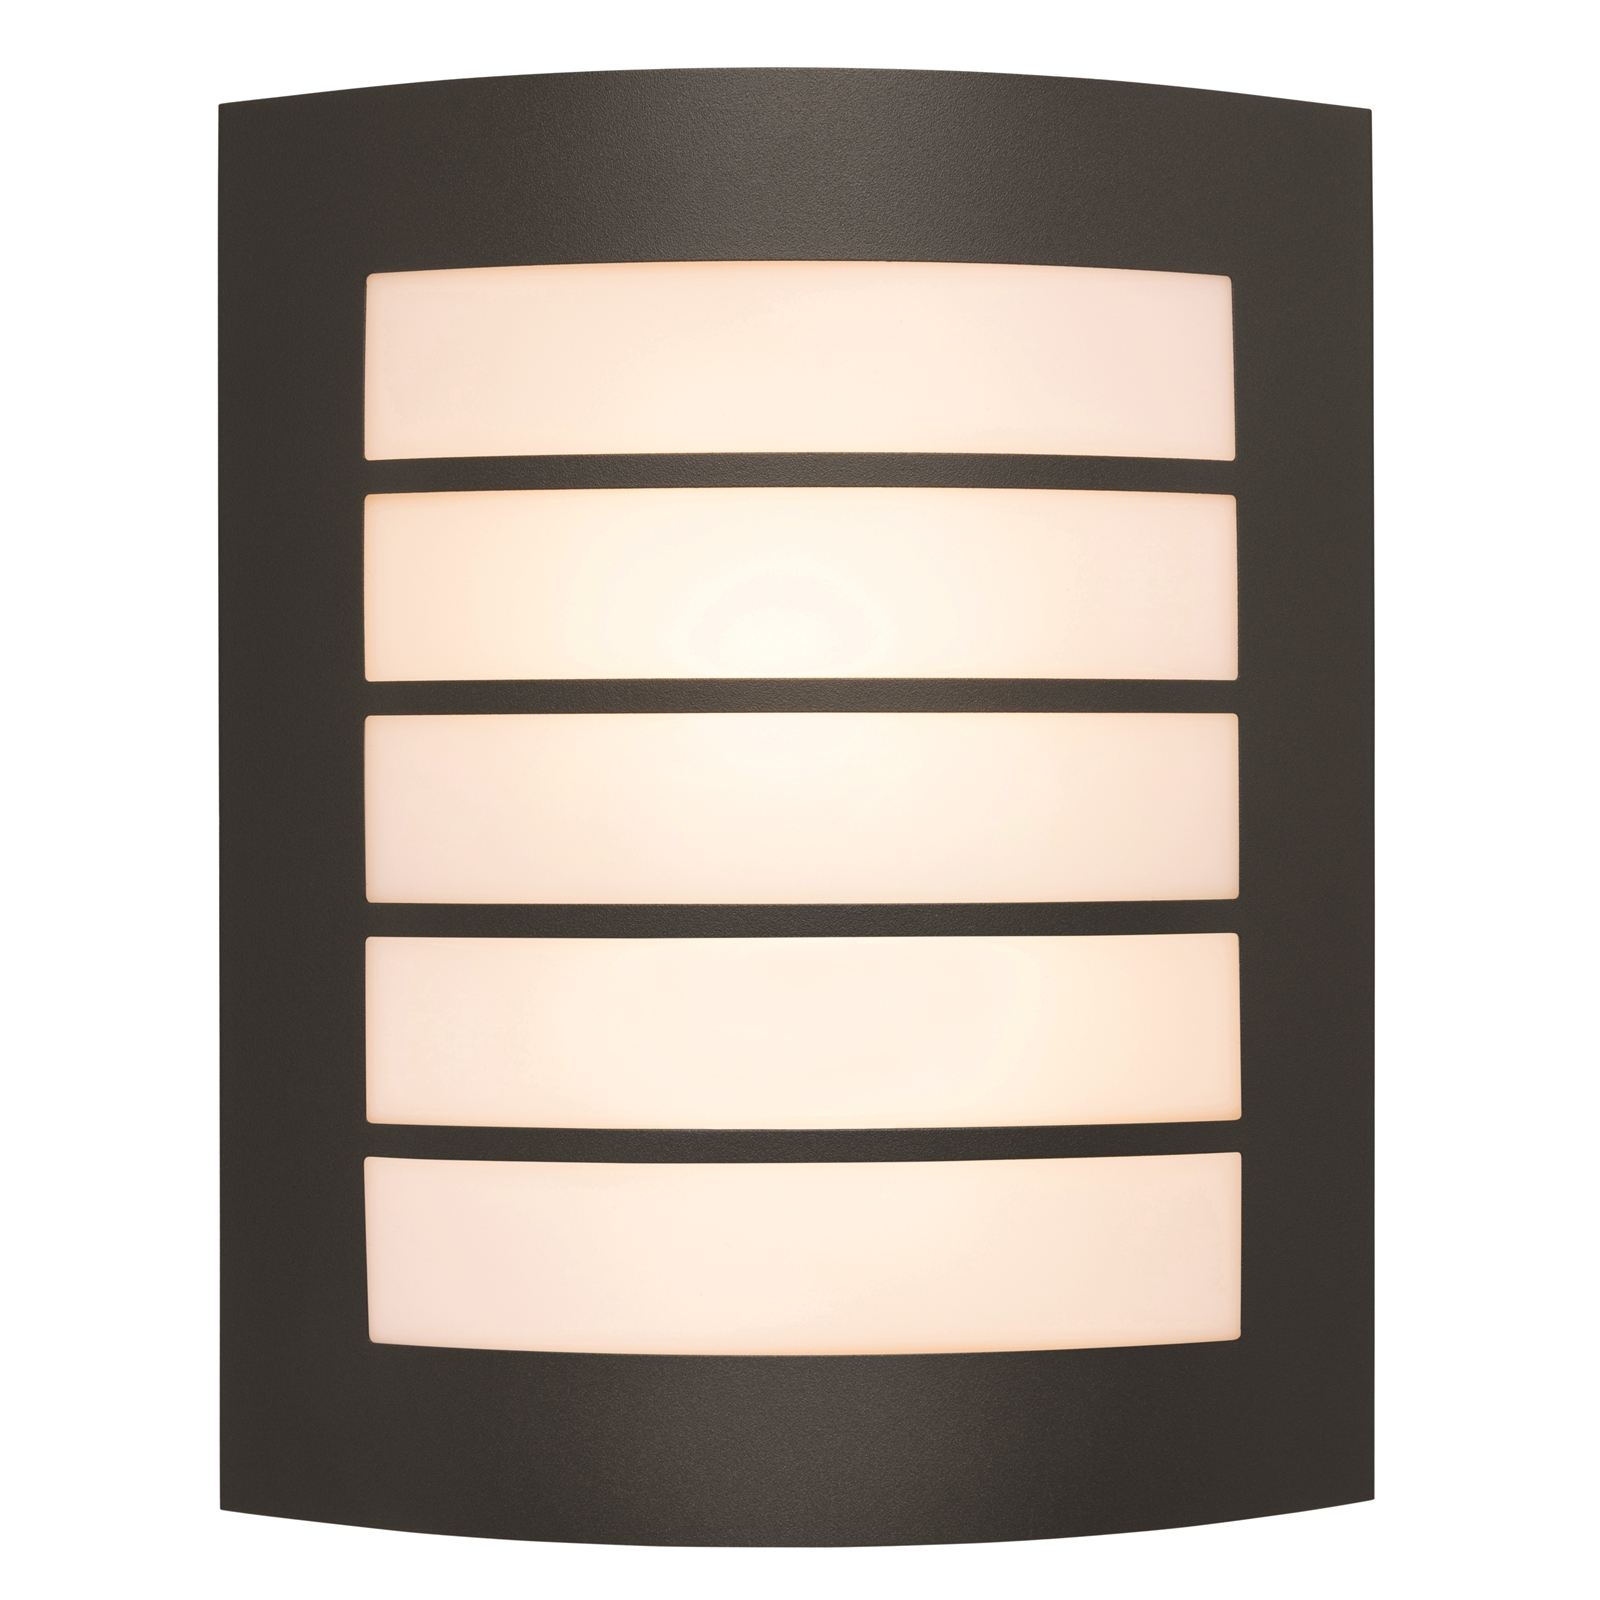 Brilliant Lighting Gladstone Charcoal Grilled Twin Bunker Lights